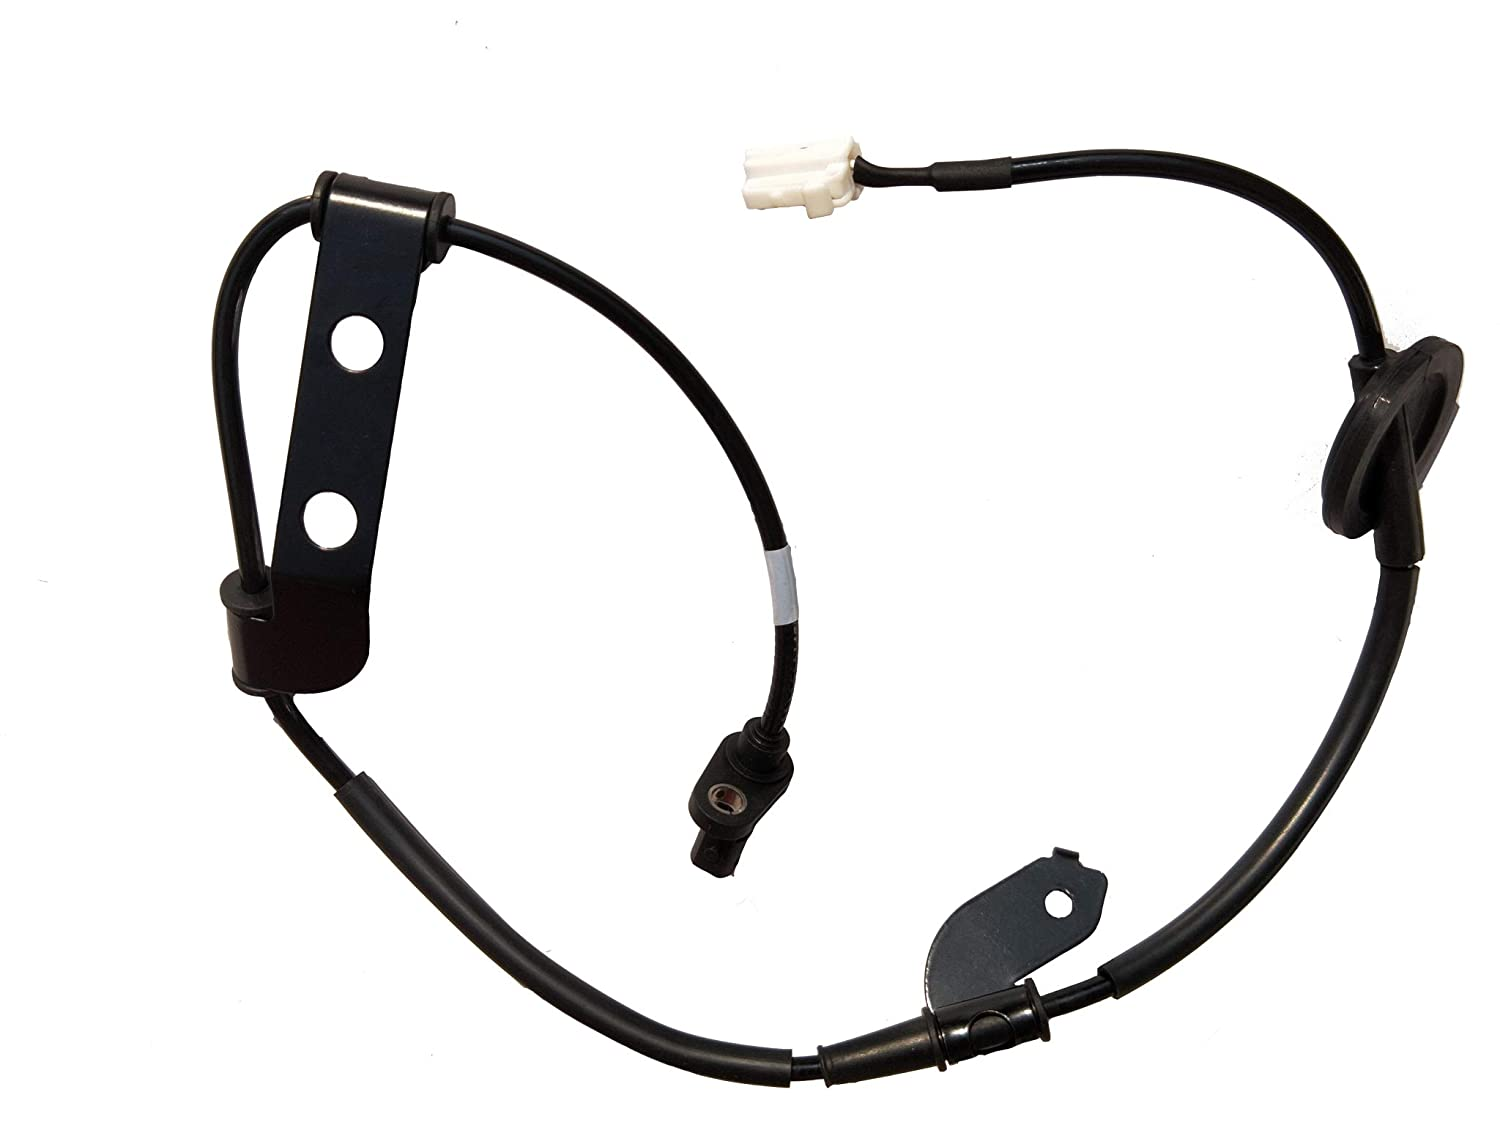 Position: Rear Left ABS020 ABS Wheel Speed Sensor OE#599102H300 for Hyundai Elantra 2007-2011